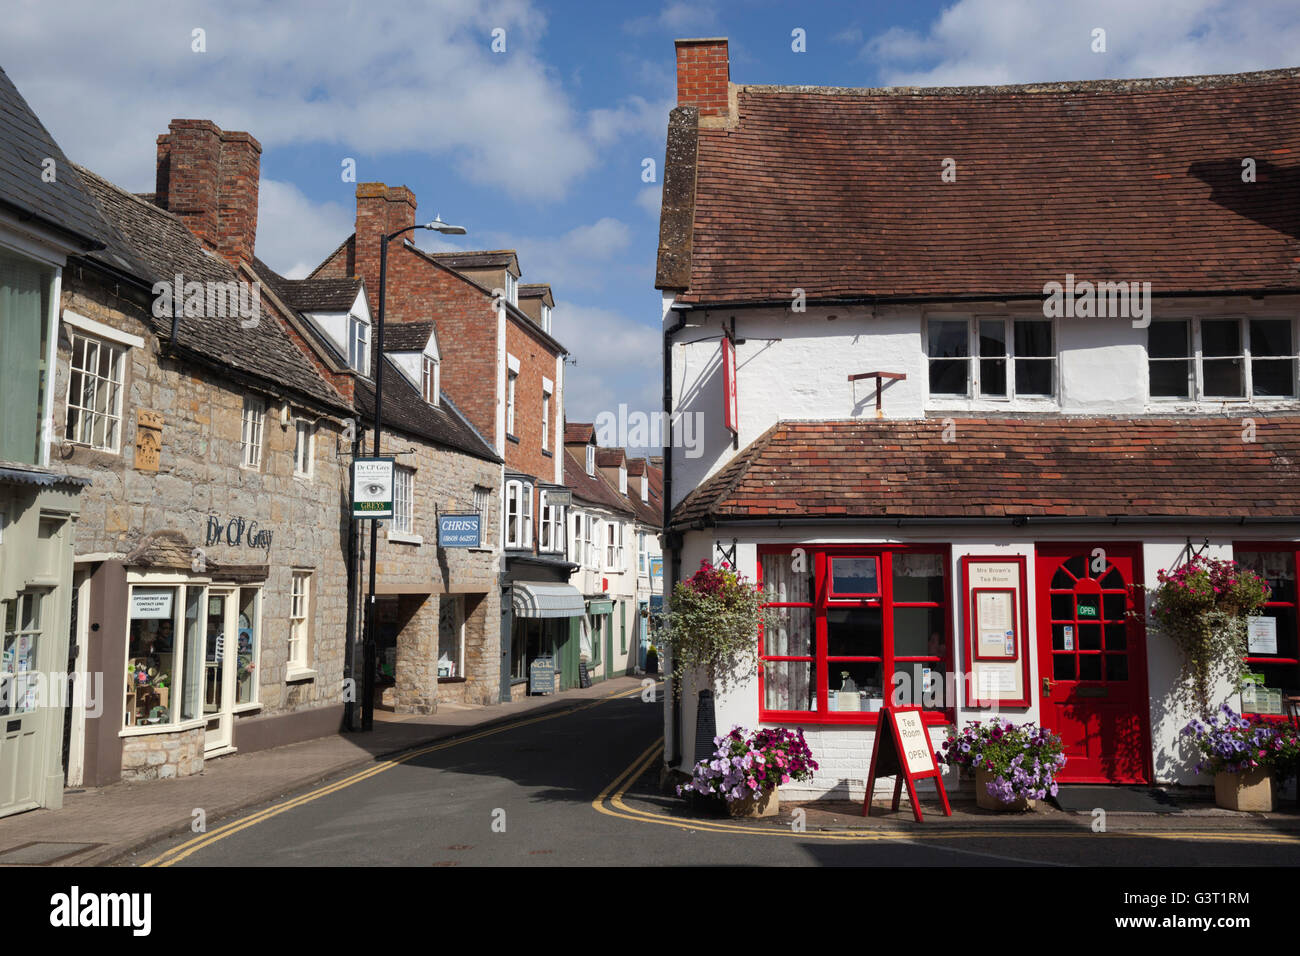 Le salon de thé de Mme Brown et vue le long de la rue des moutons, Shipston-on-Stour, Warwickshire, Angleterre, Photo Stock